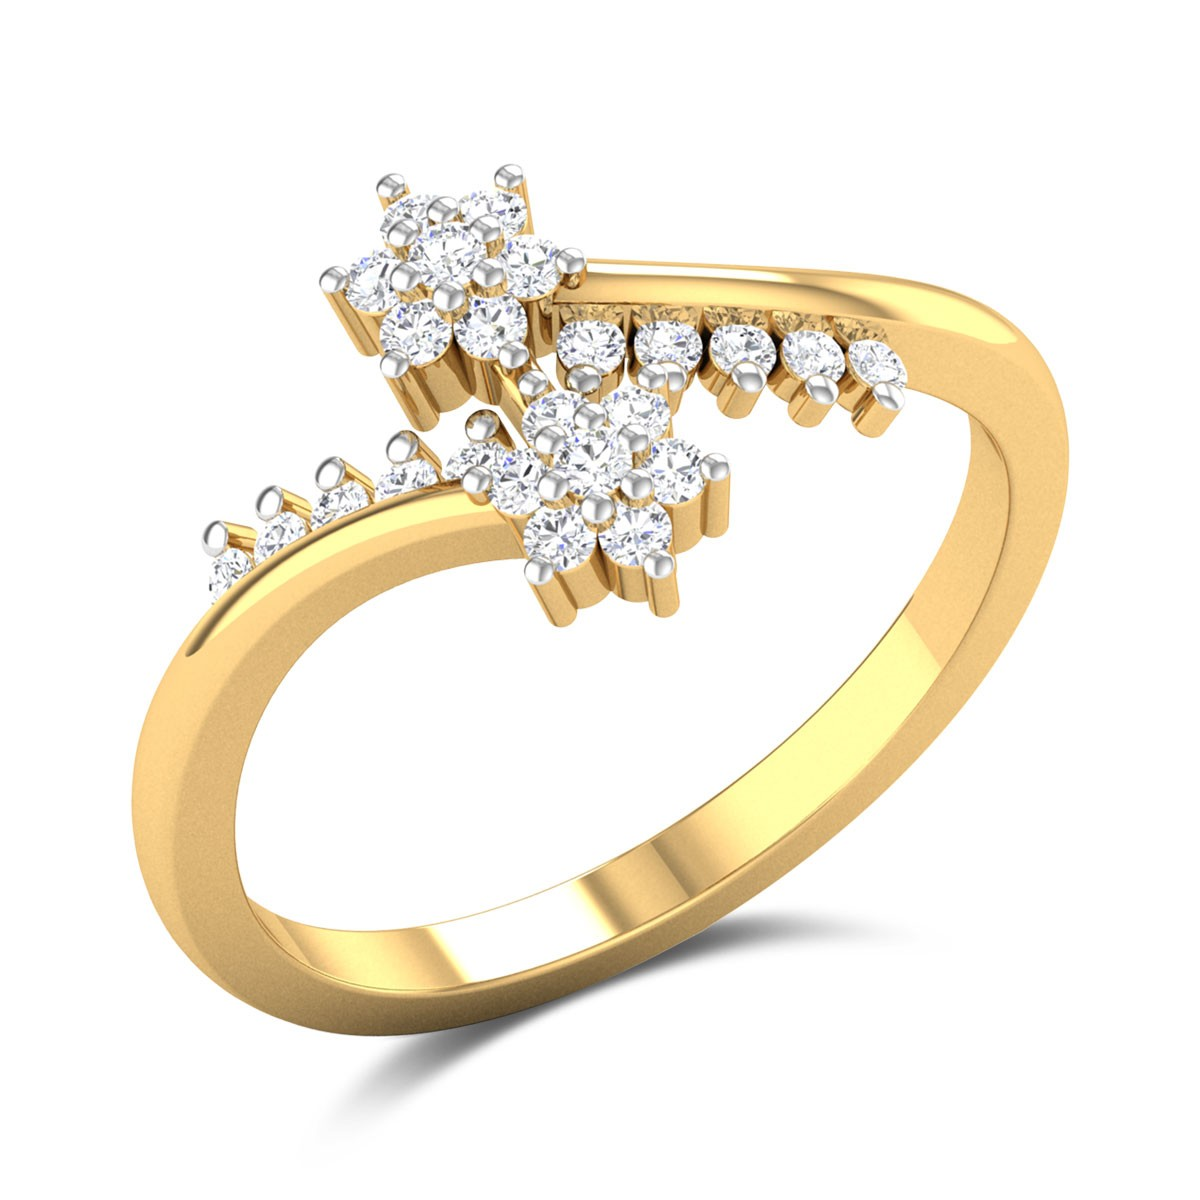 Neive Diamond Ring